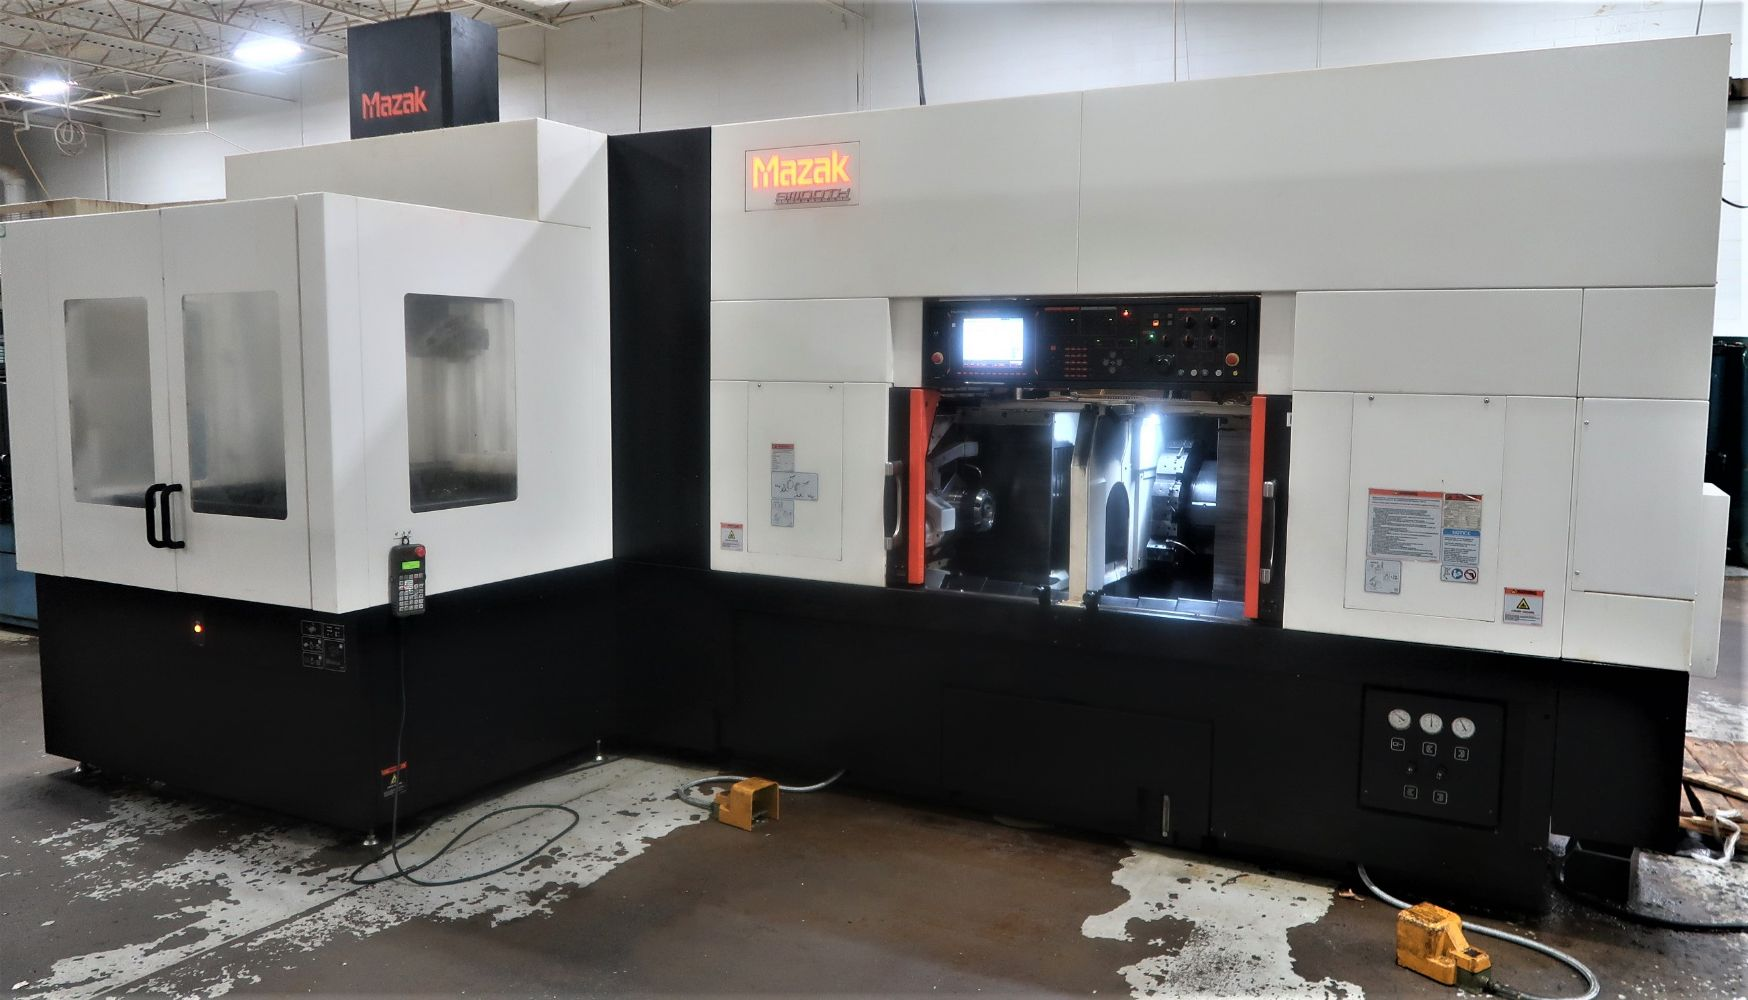 MRA IND. 40 HIGH END CNC, Okuma LU3000EX (4) 2015, Mazak Multiplex 6200Y & 6300Y (4), Mazak Dual Turn 20 2018 (6), Nexus 200 (6) SPLINE ROLLERS